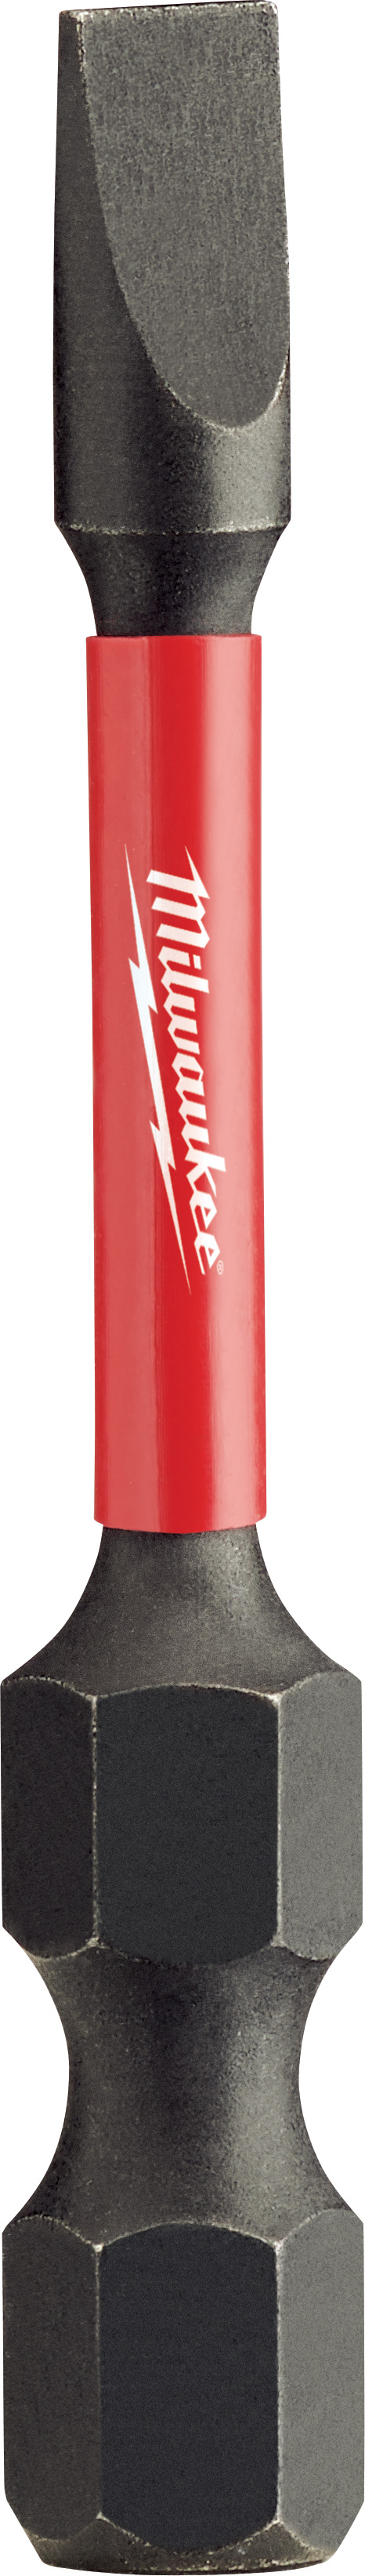 "Milwaukee 48-32-4919 SHOCKWAVE™ 2"" Impact Slotted 3/16"" Power Bit"